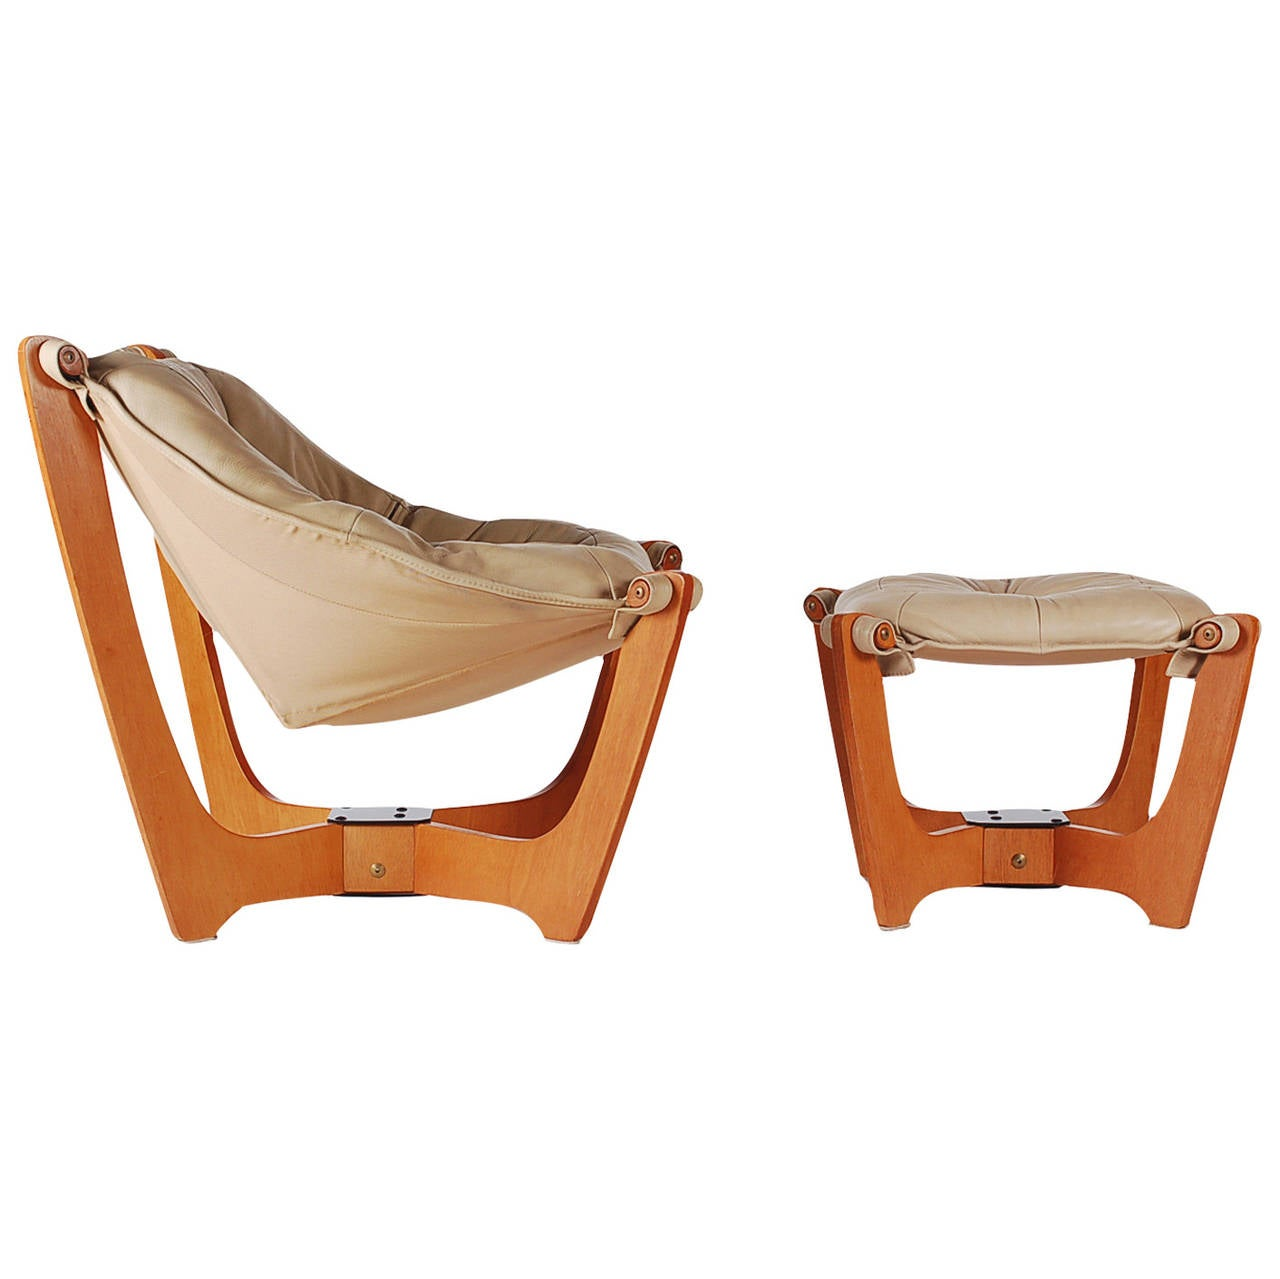 Scandinavian leather sling lounge chair and ottoman for sale at 1stdibs - Scandinavian chair ...